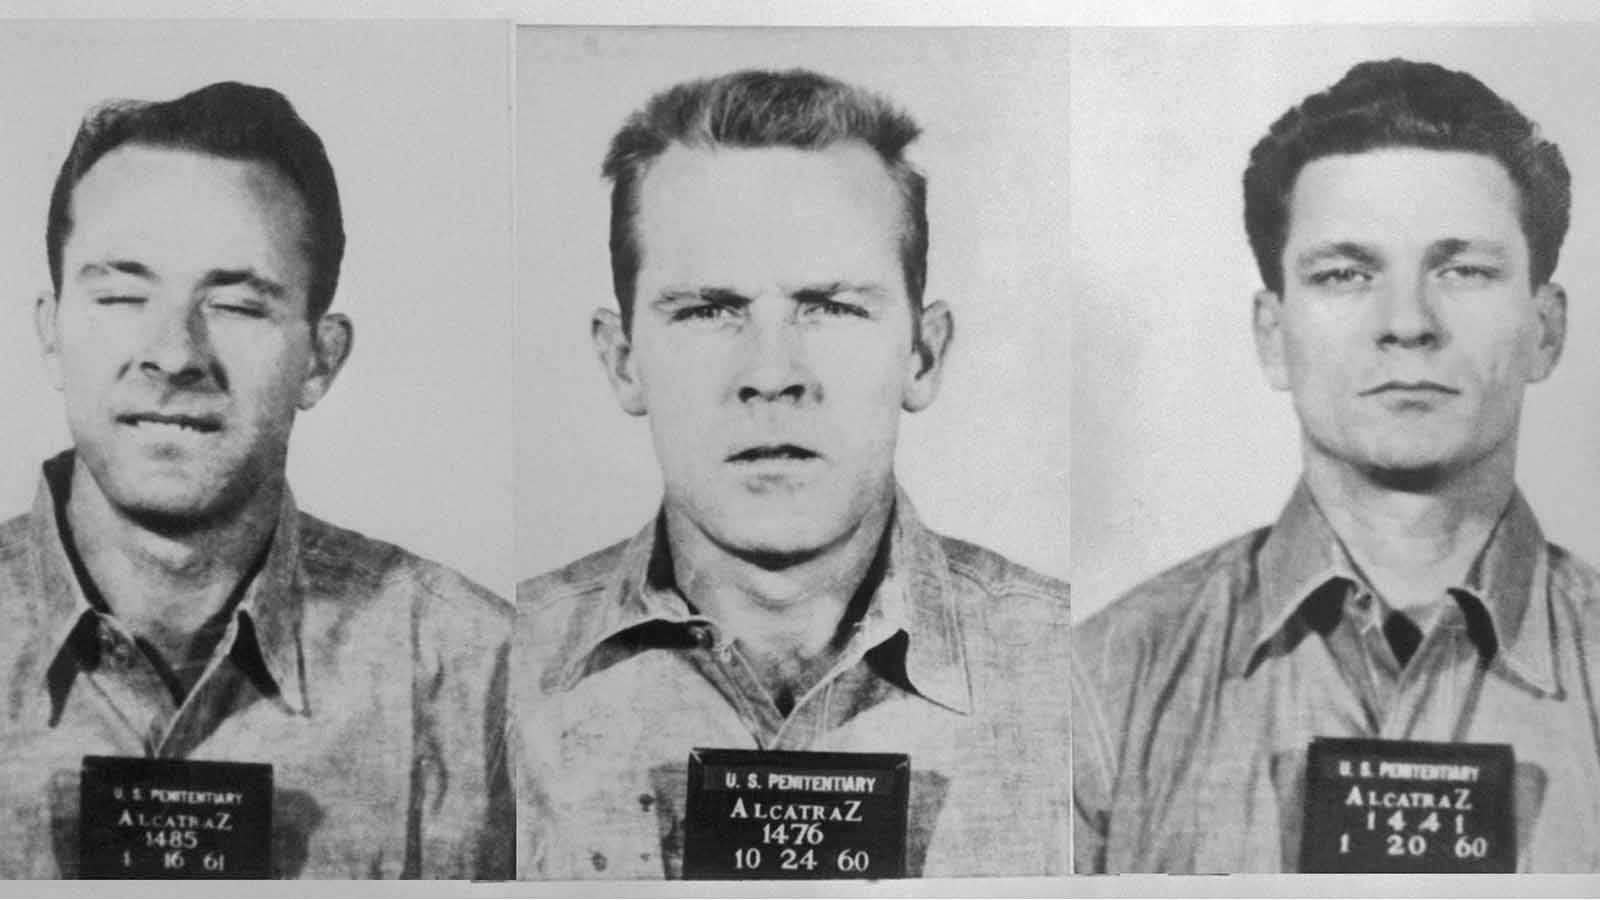 Alcatraz was known as the Rock for a reason: escape was next to impossible. But three men may have escaped after all, though it was never confirmed.